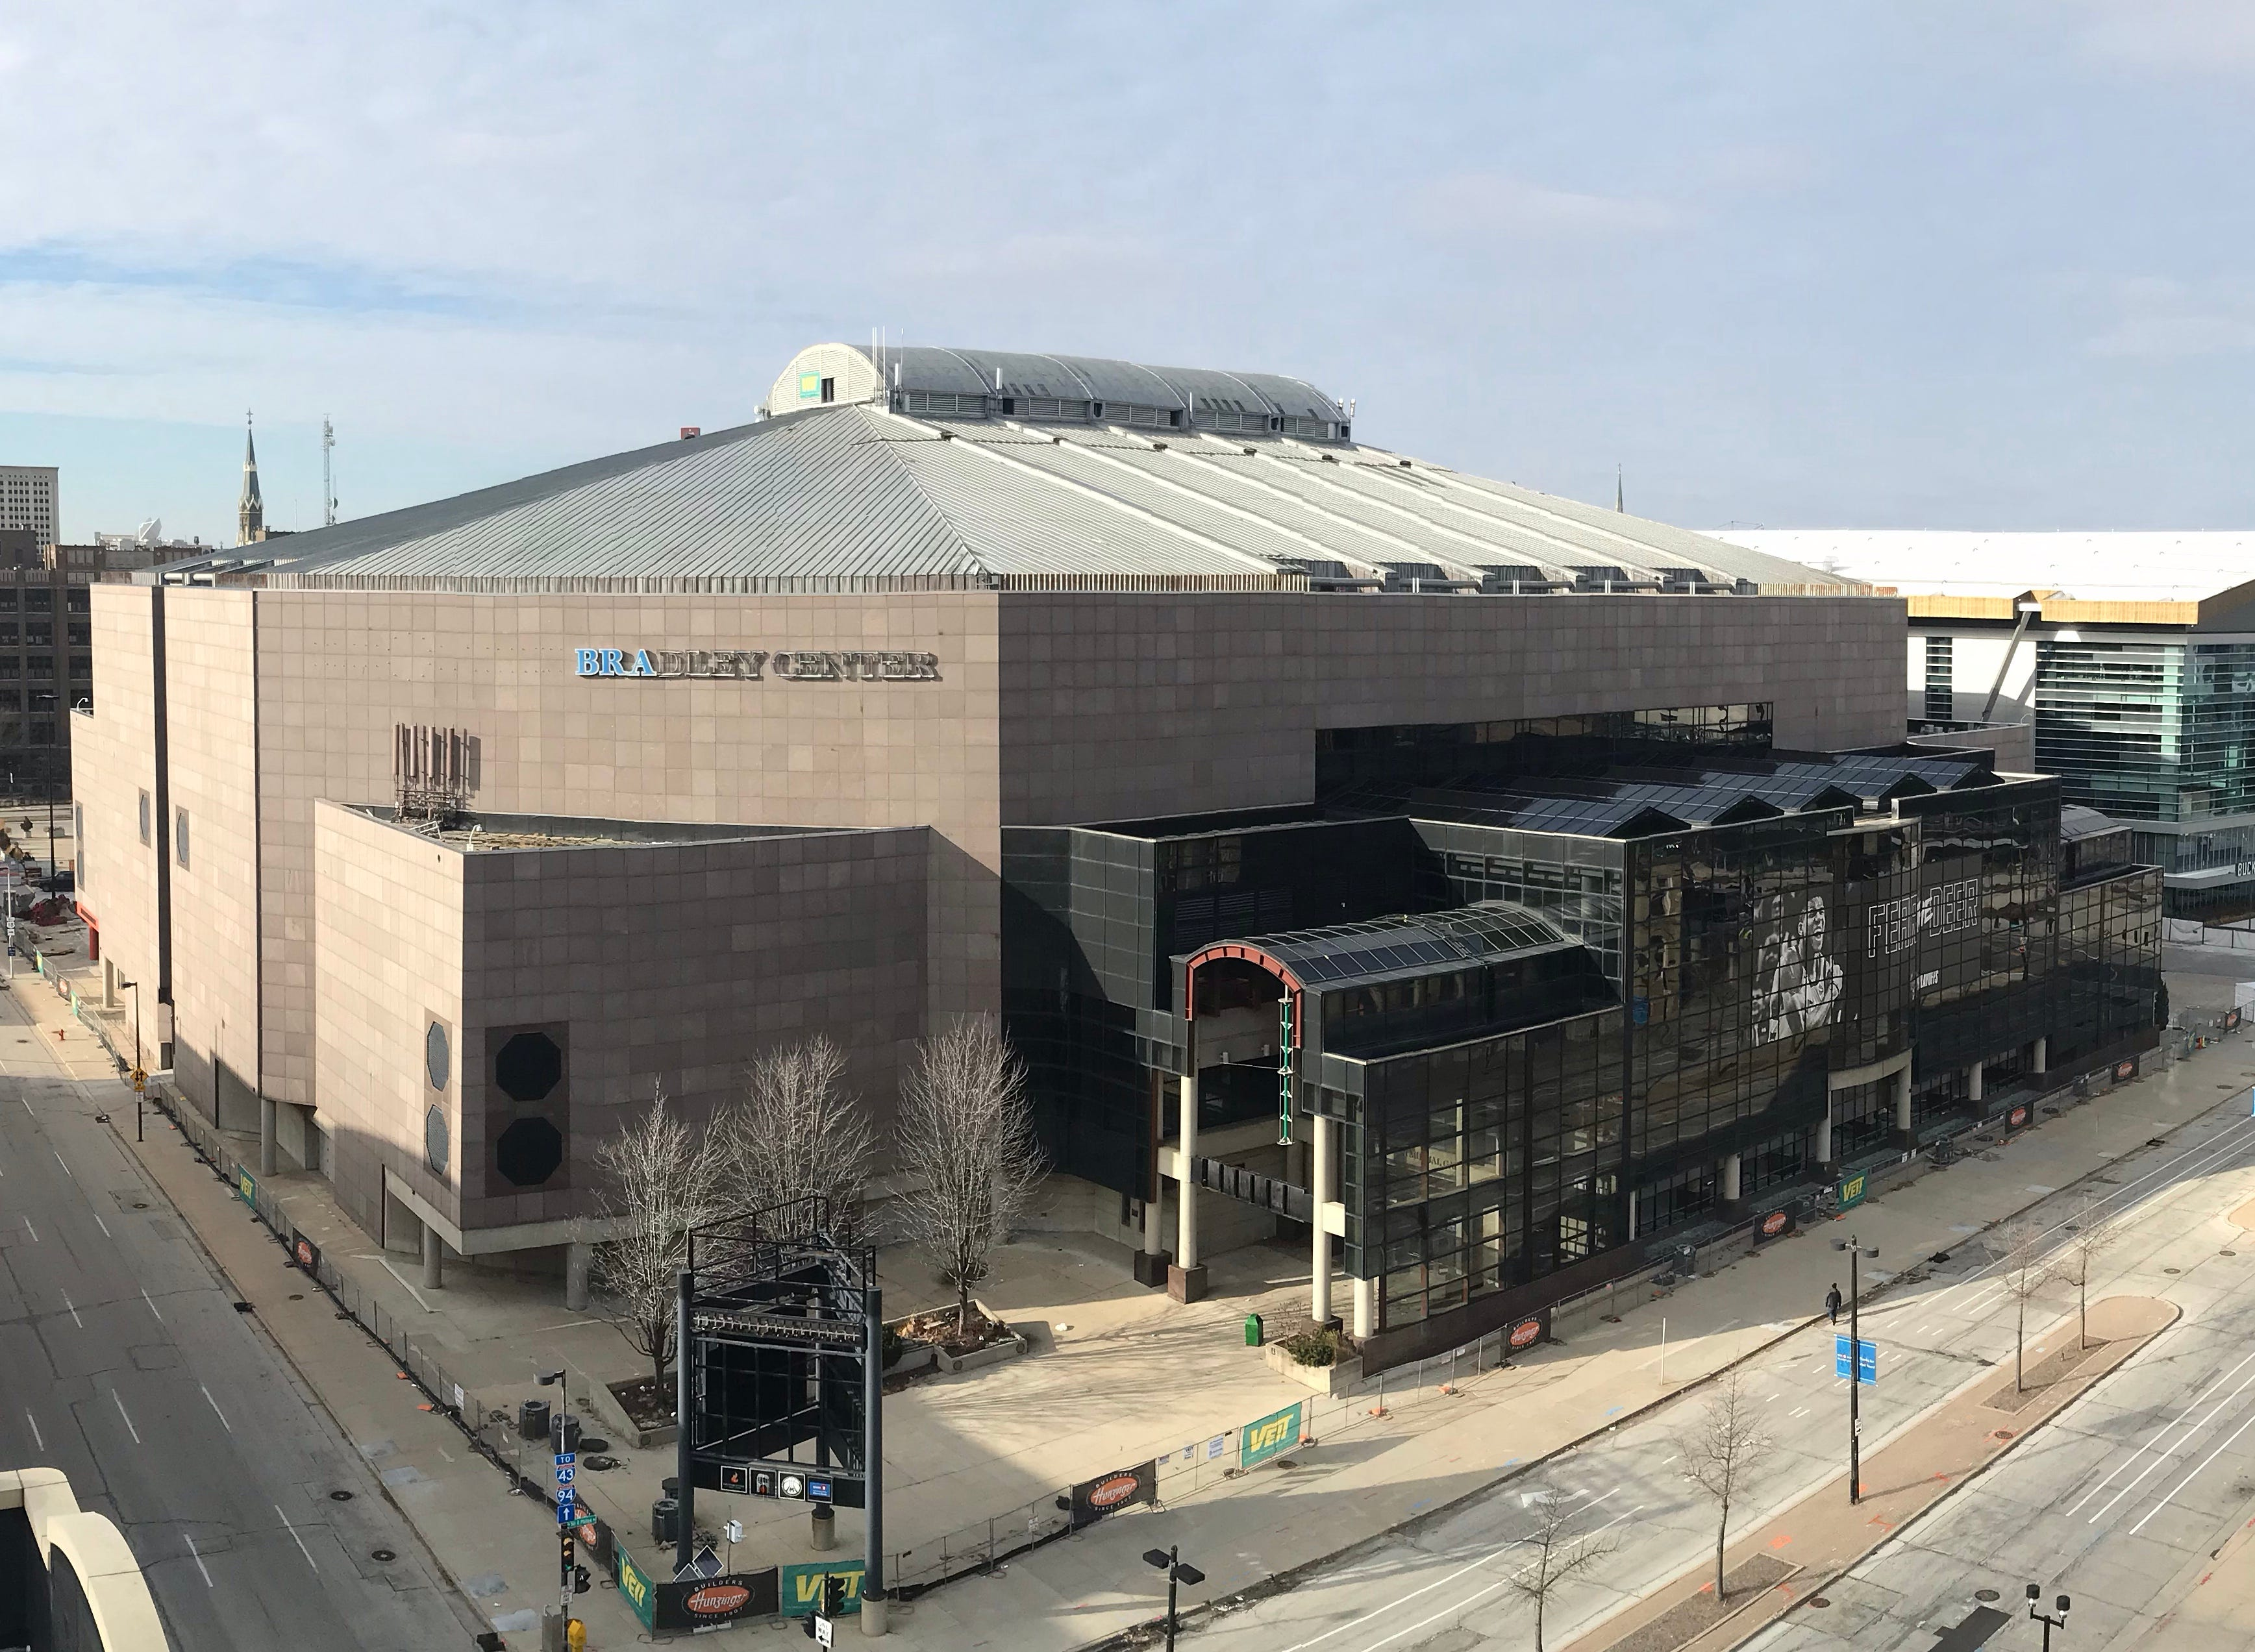 The Bradley Heart roof blast: Right here is what to wait for for the extensive tournament Sunday morning